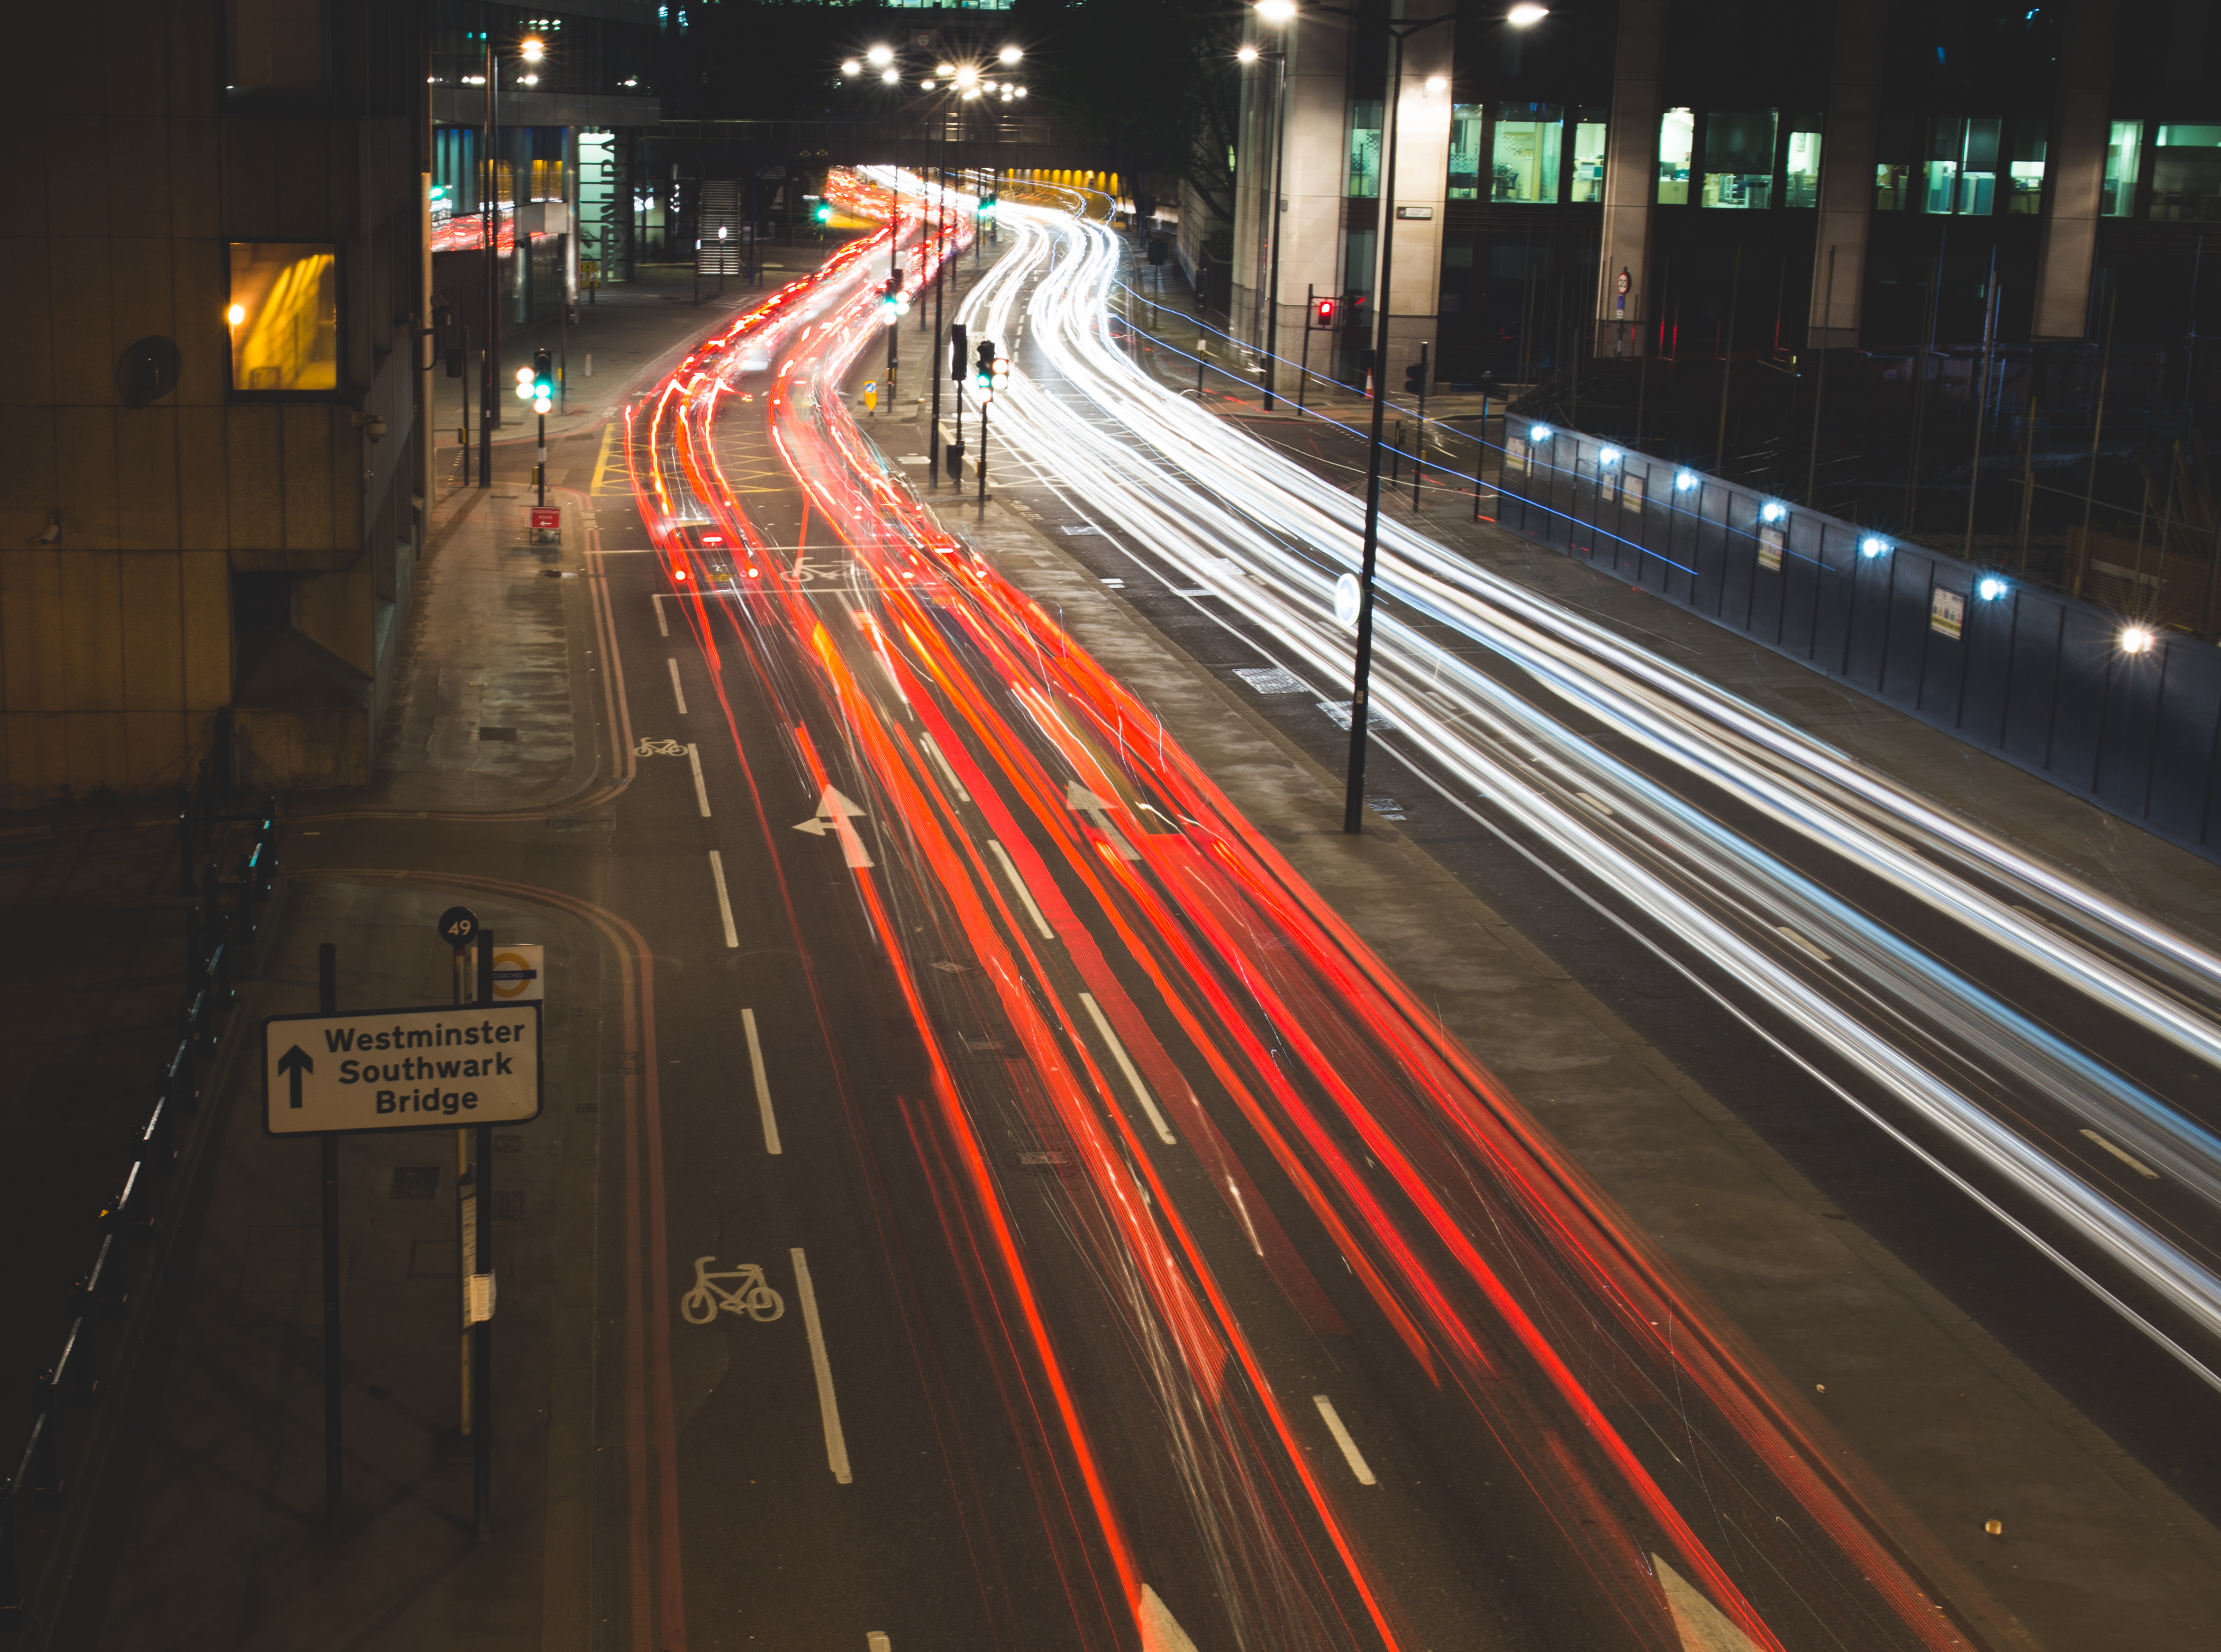 Traffic in Motion, Blur, Buildings, City, Effect, HQ Photo